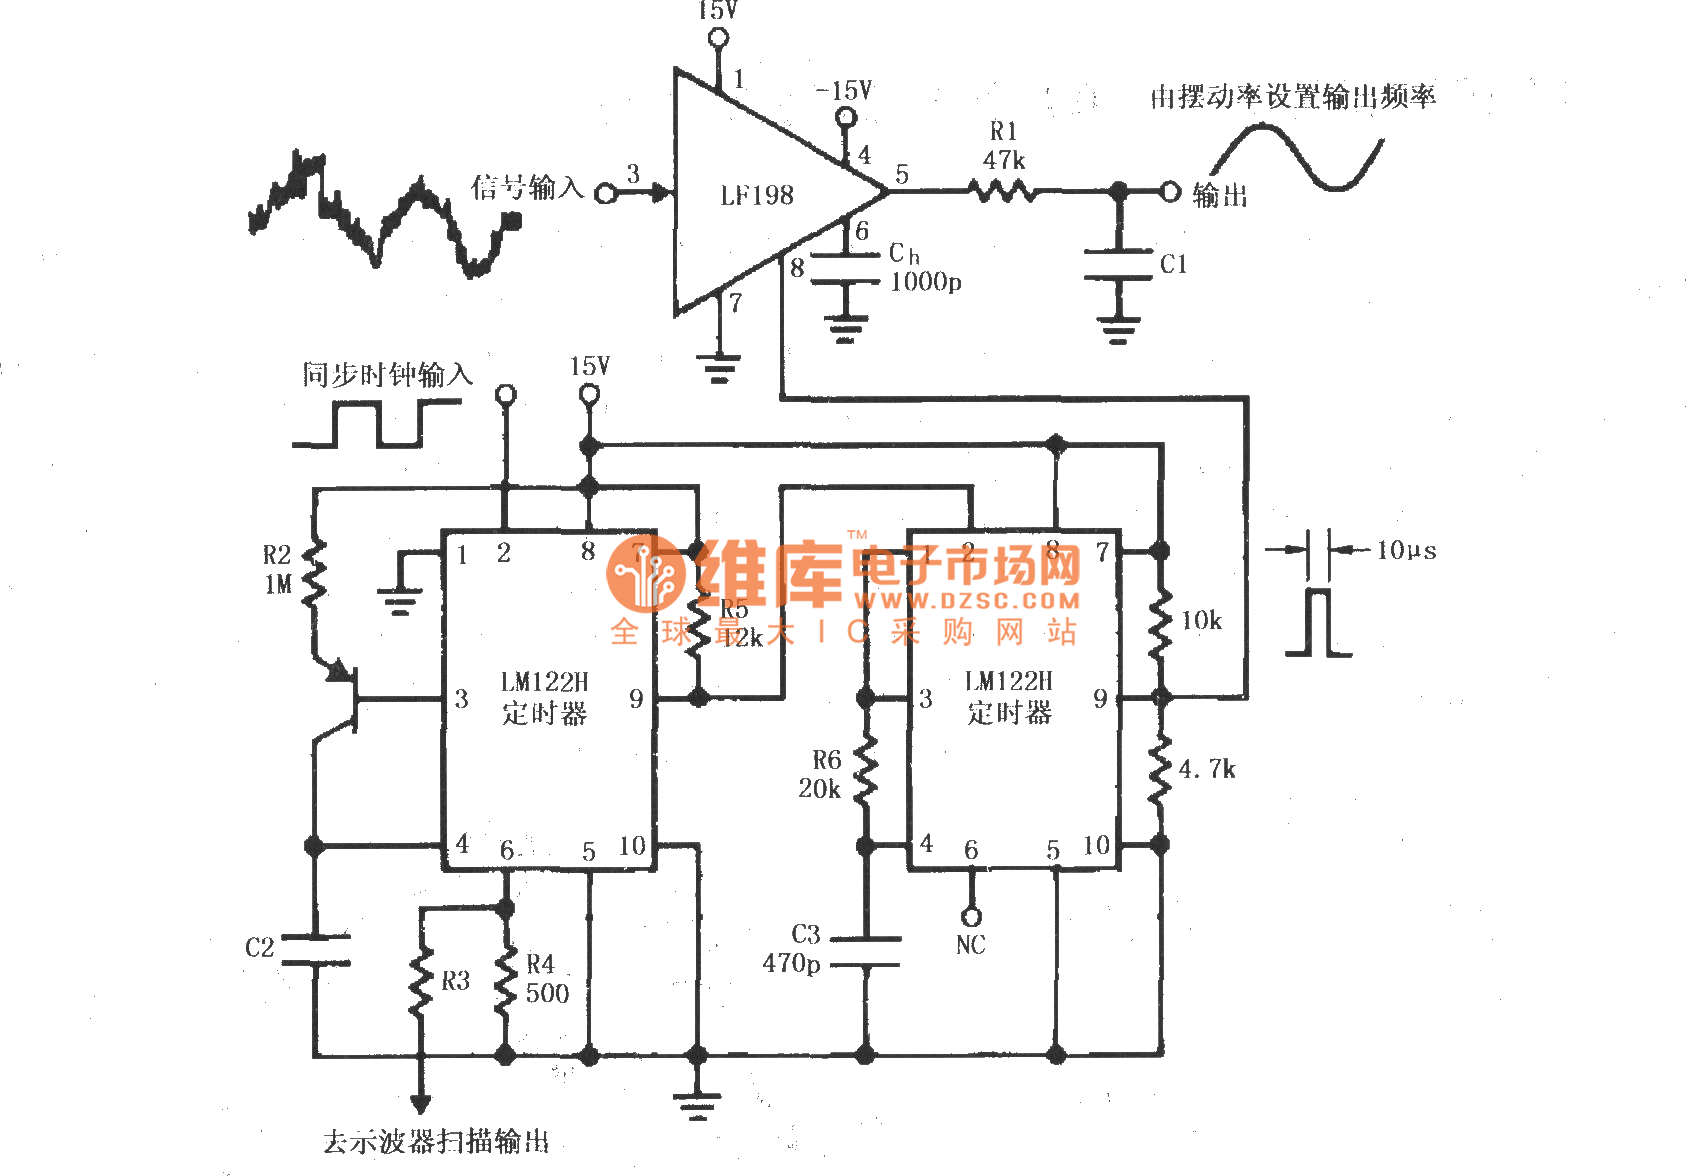 Results Page 108 About Signal Generator Using Xr2206 Searching How To Build Solar Lamp Pr4403 A Part Of Product Detector Circuit Composed Lf198 And Lm122h